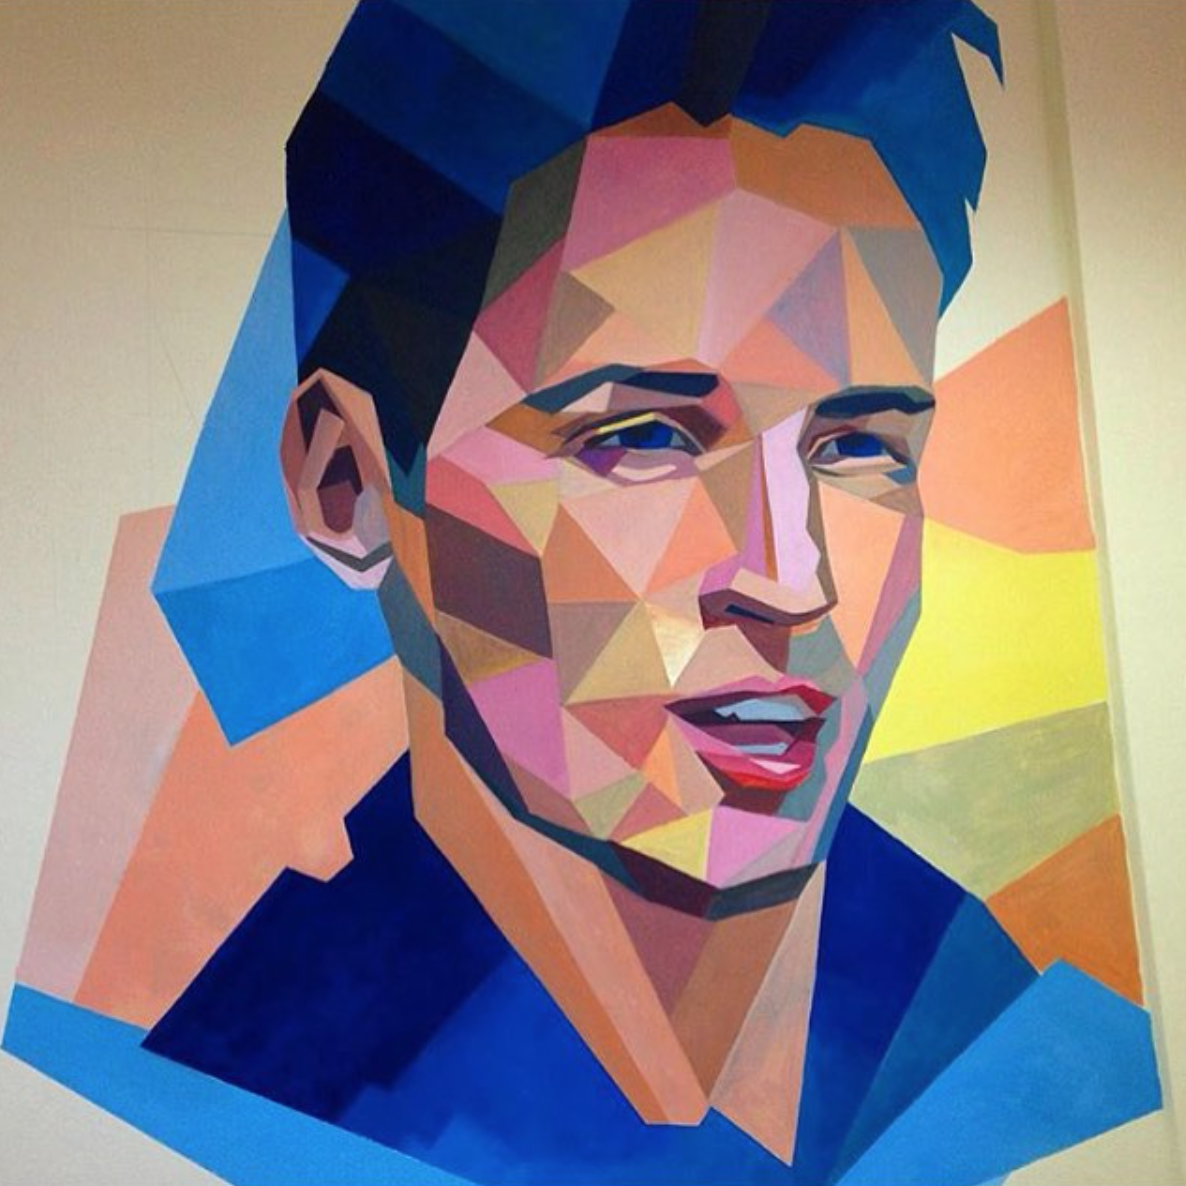 10 lessons from Pavel Durov 57